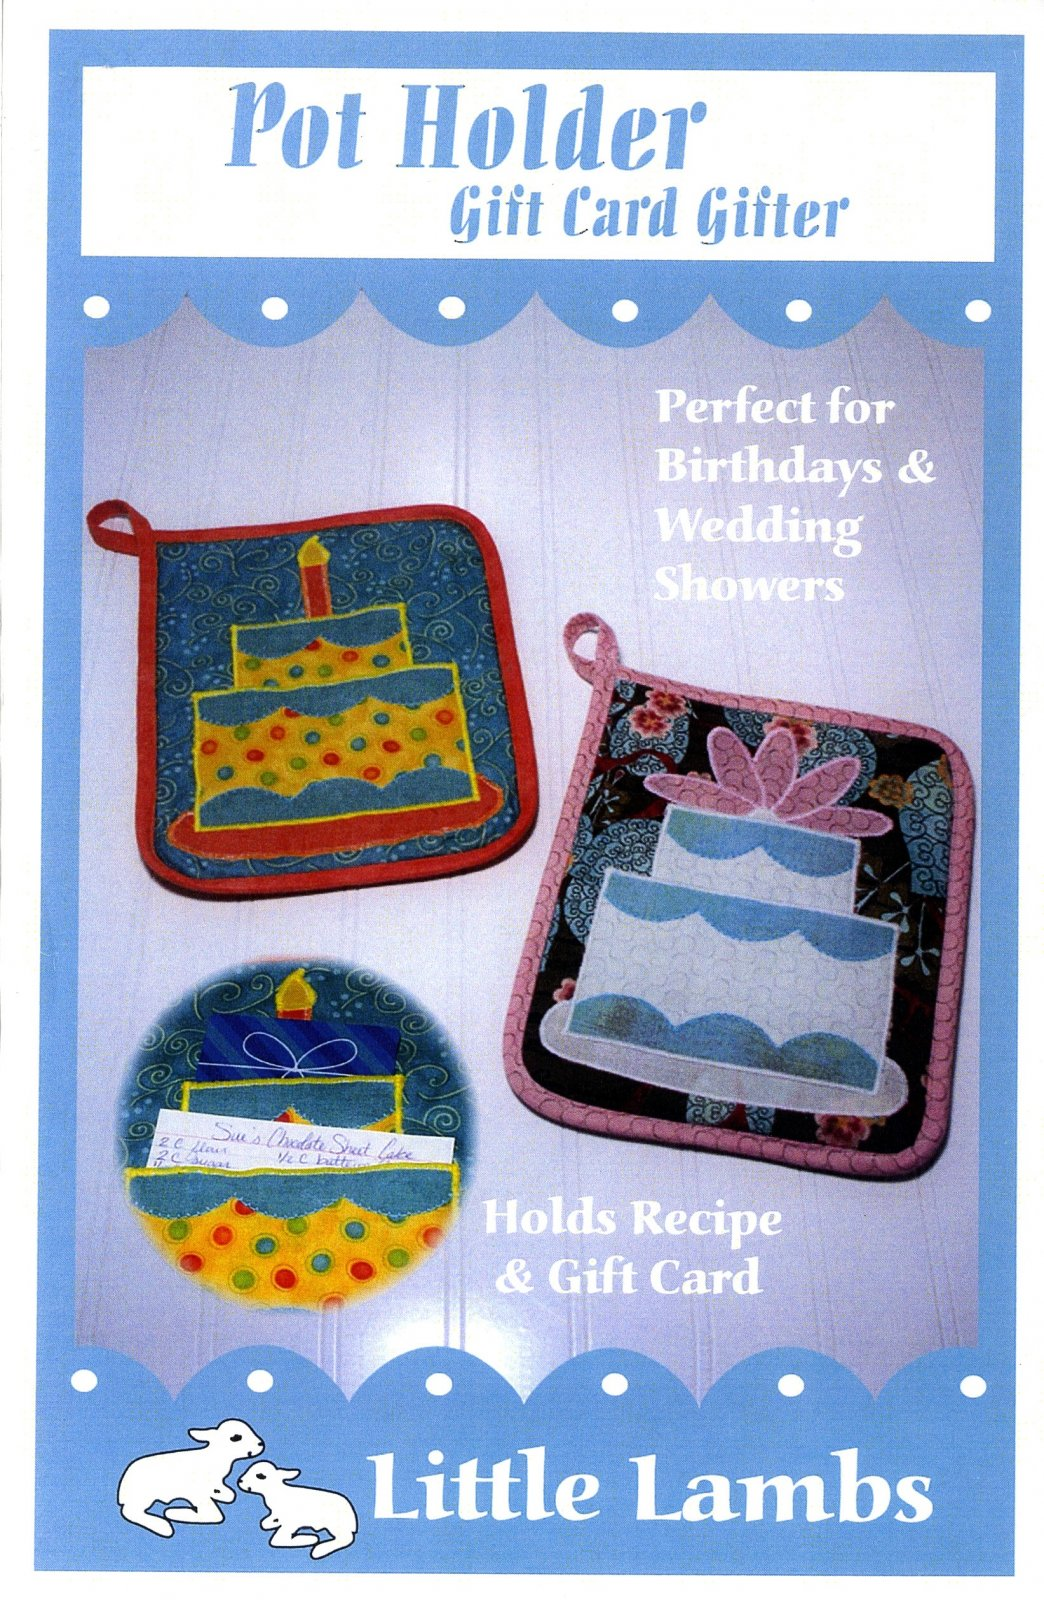 Pot Holder Gift Card Gifter